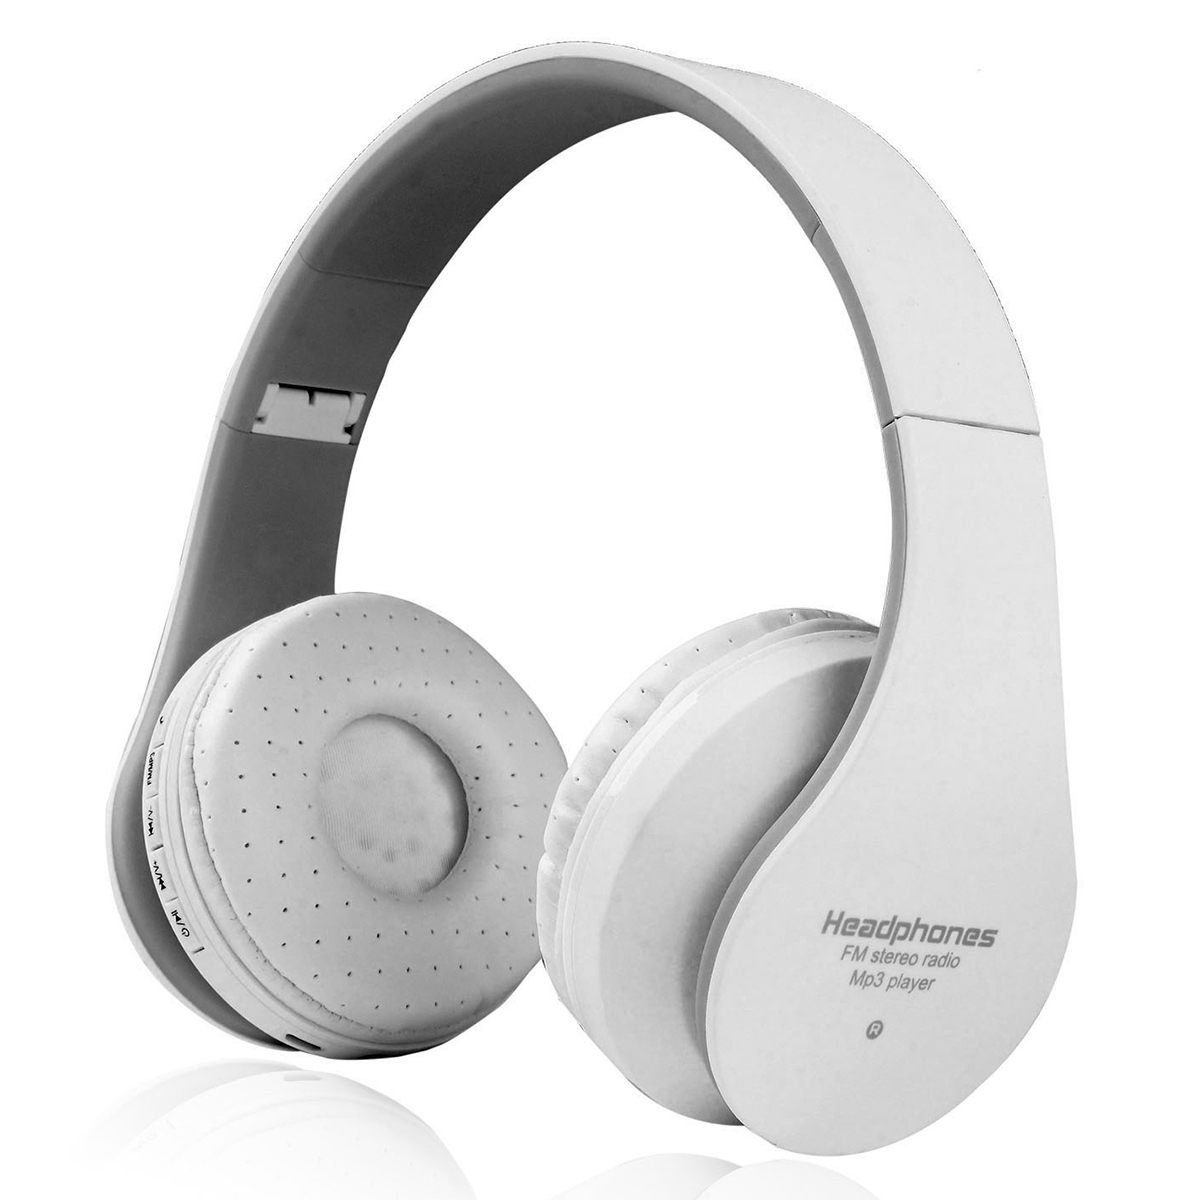 39a8b3d2395 SODIAL Wireless Headphones Bluetooth Stereo Bass HiFi Foldable Lightweight  Wired and Wireless Headphones Support FM Radio, SD Card and Wired Modes  Built in ...